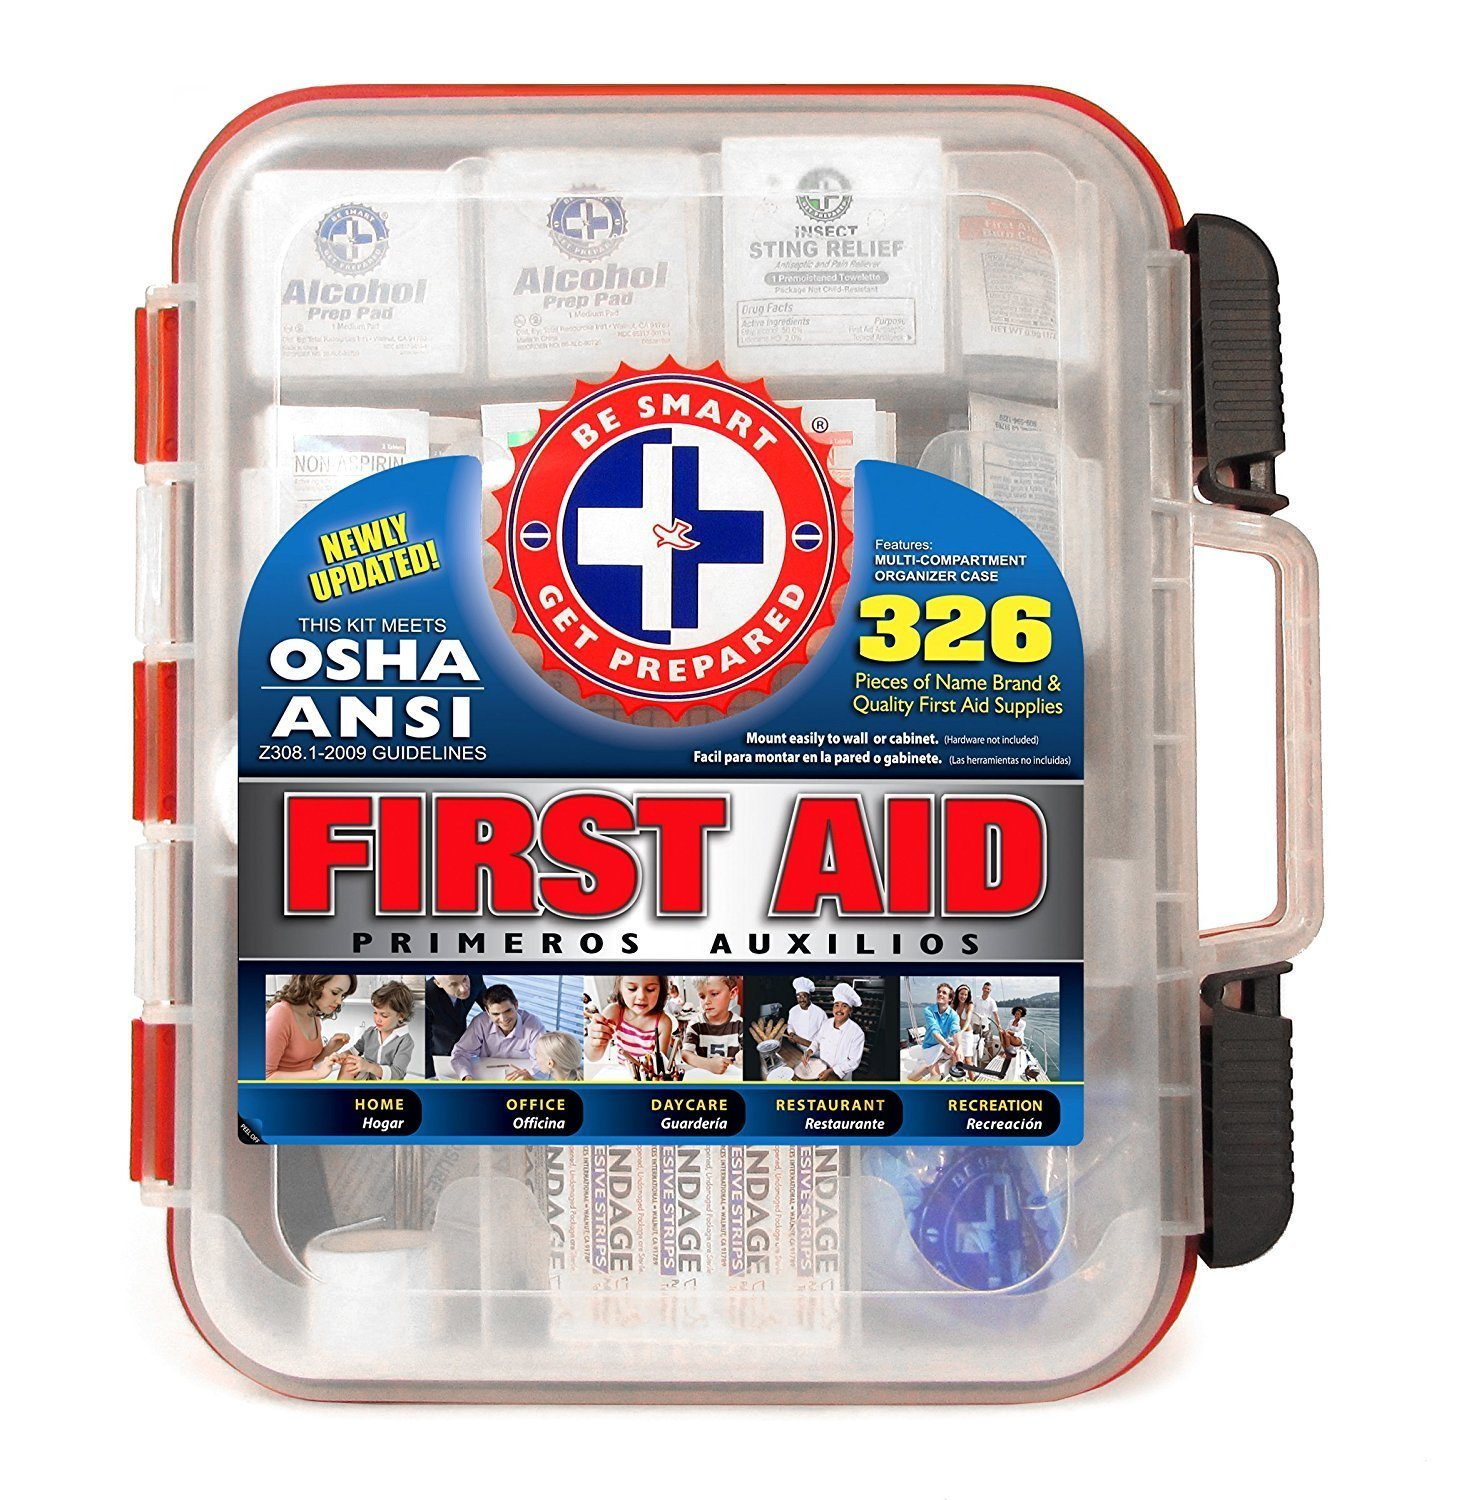 First Aid Kit Hard Red Case 326 Pieces Exceeds OSHA and ANSI Guidelines 100 People -